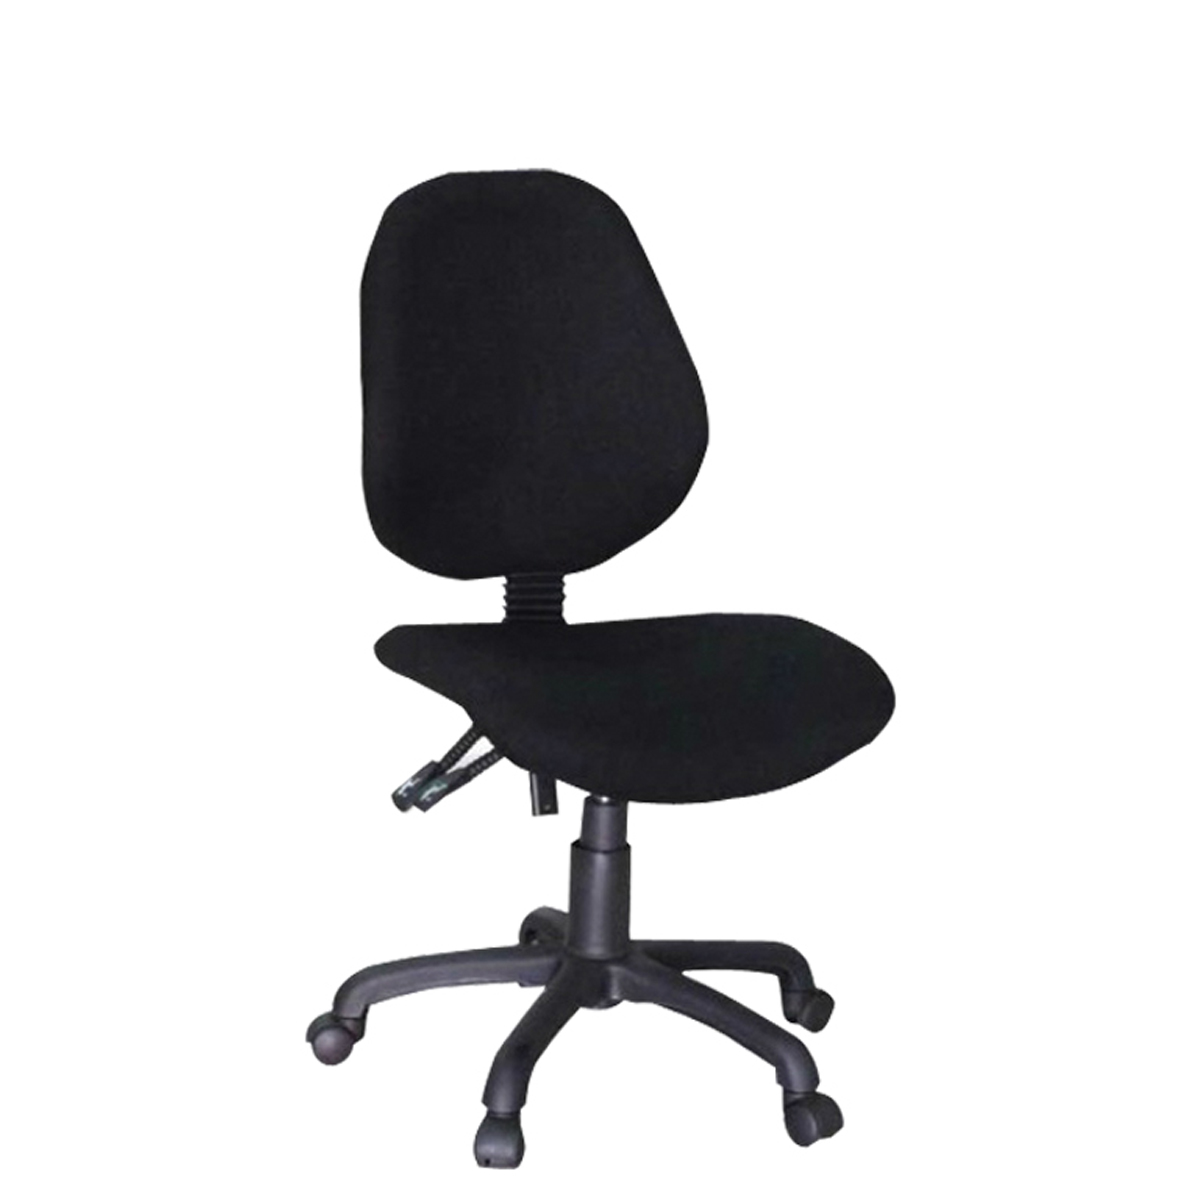 Tremendous Ergoflex Executive Typist Office Chair Download Free Architecture Designs Scobabritishbridgeorg